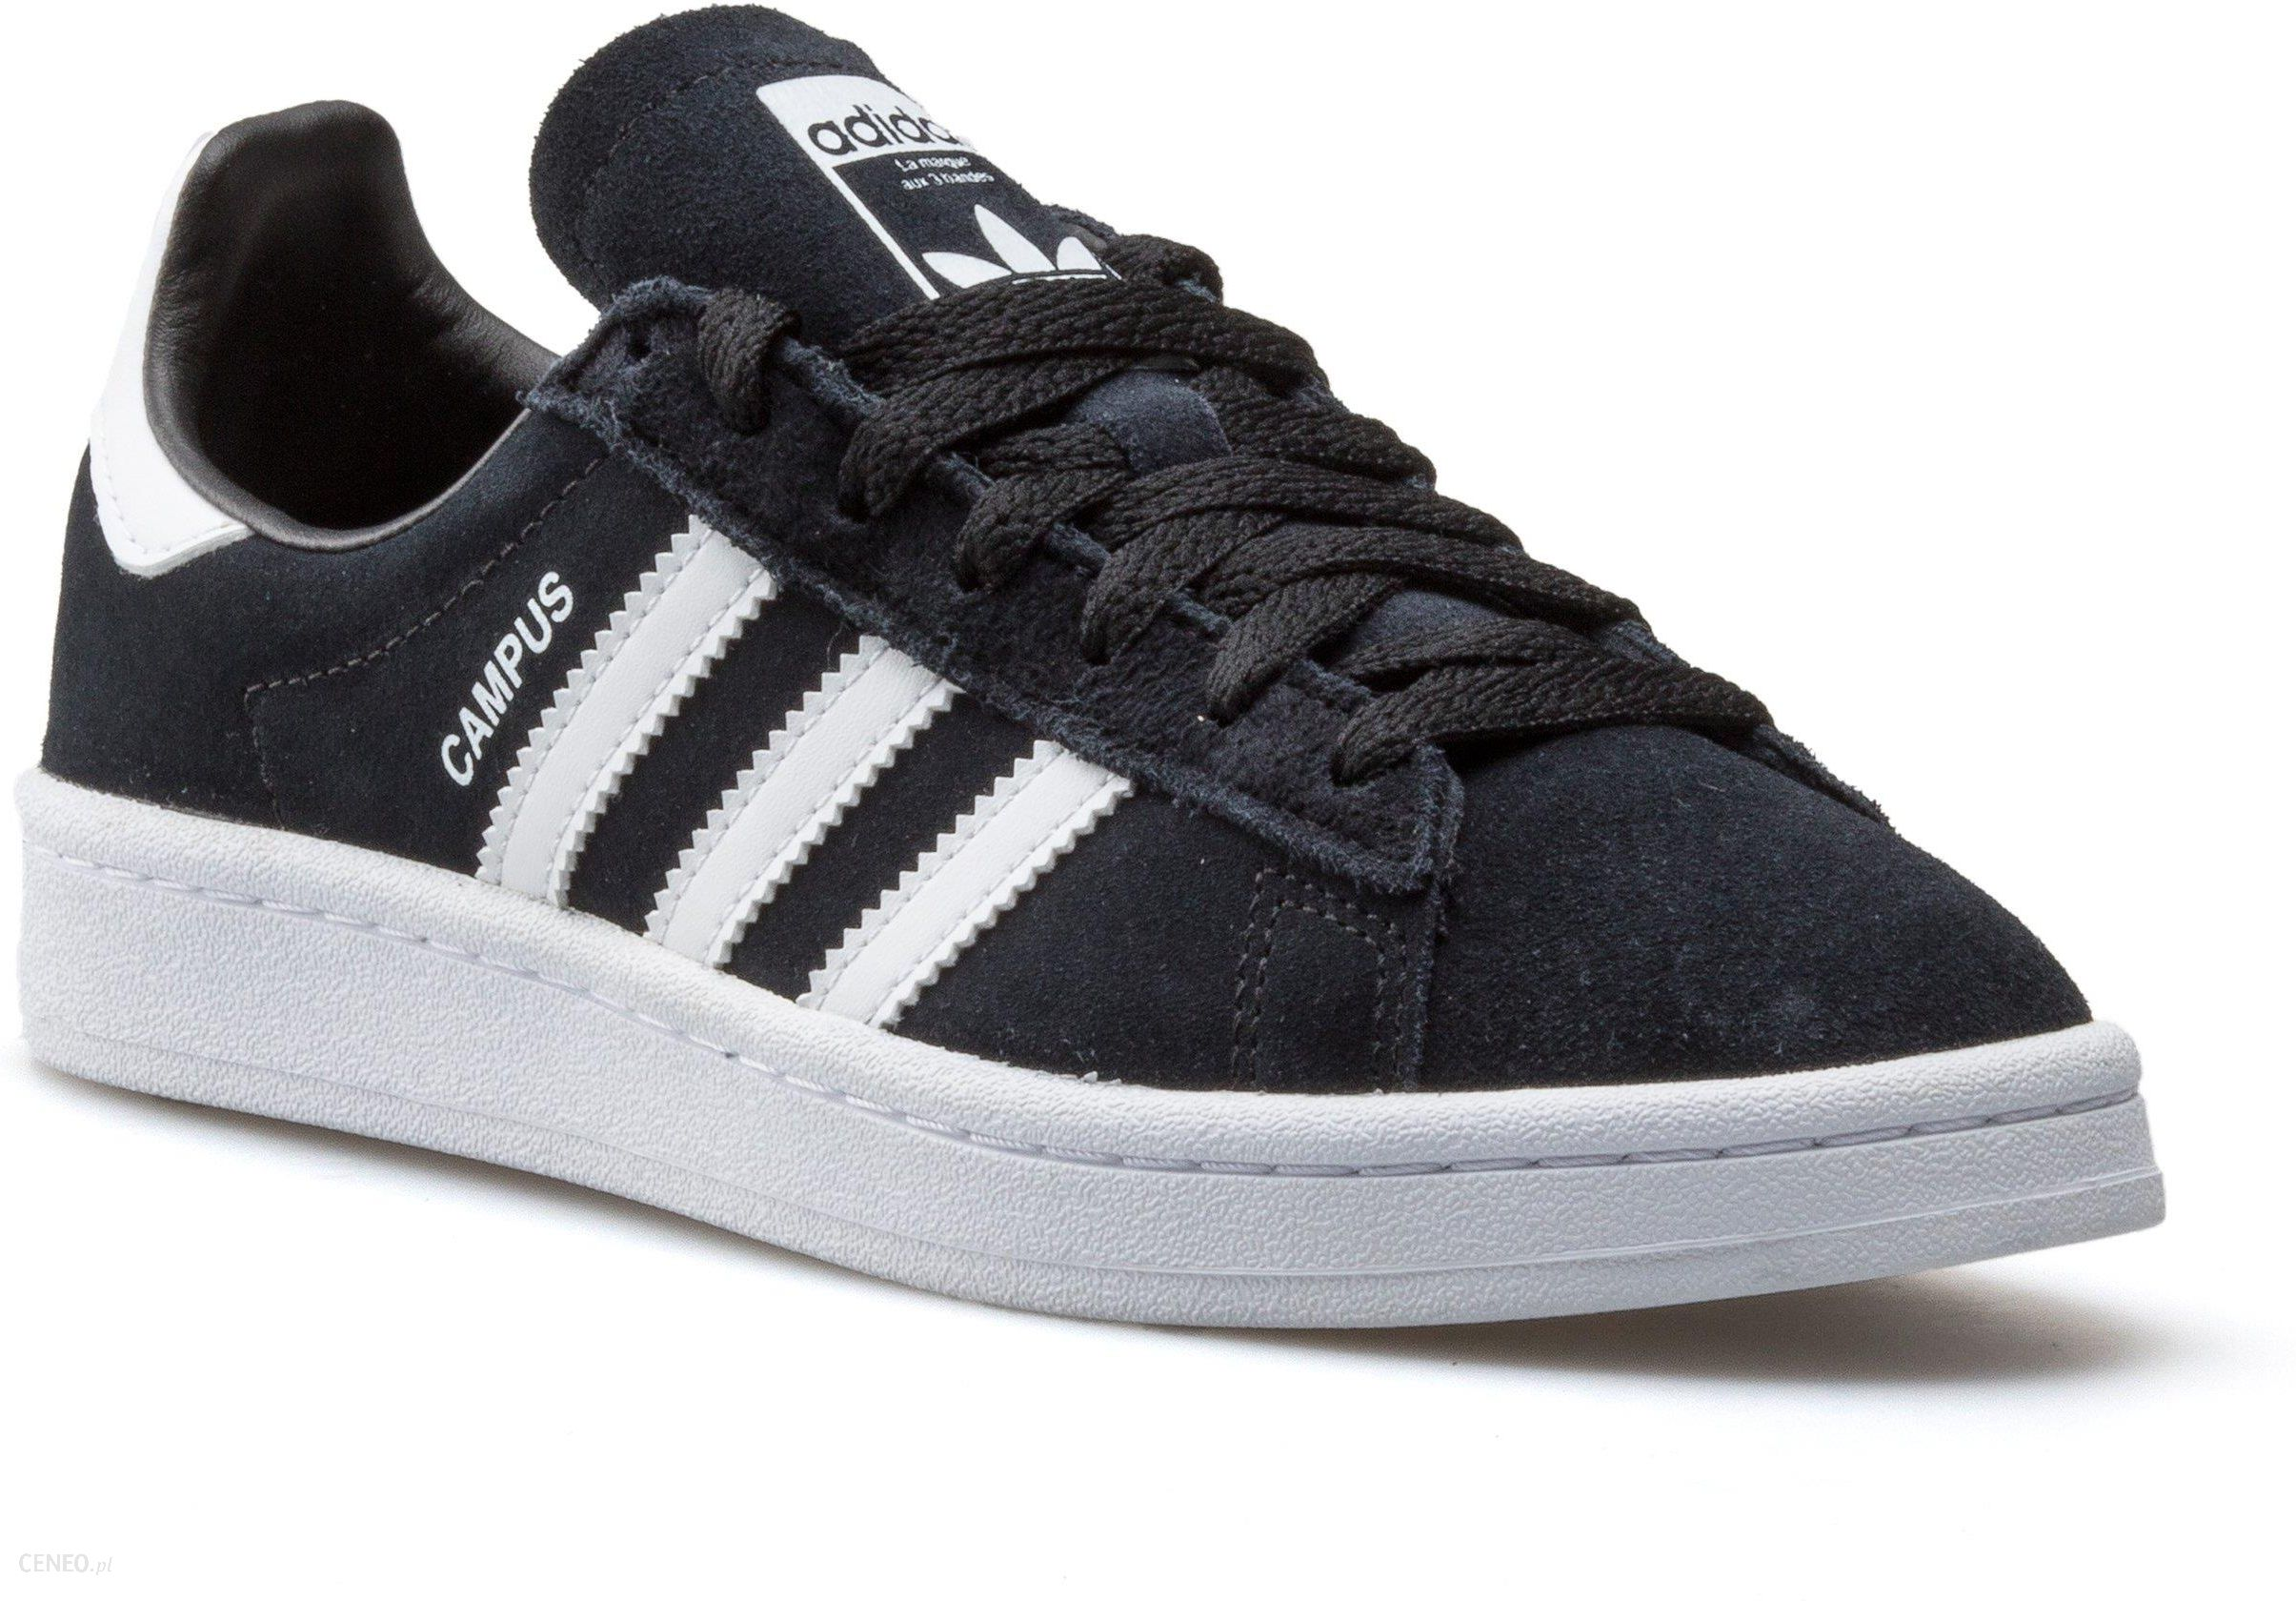 competitive price eea93 0e984 Buty adidas Campus J BY9580 r. 38 23 - zdjęcie 1